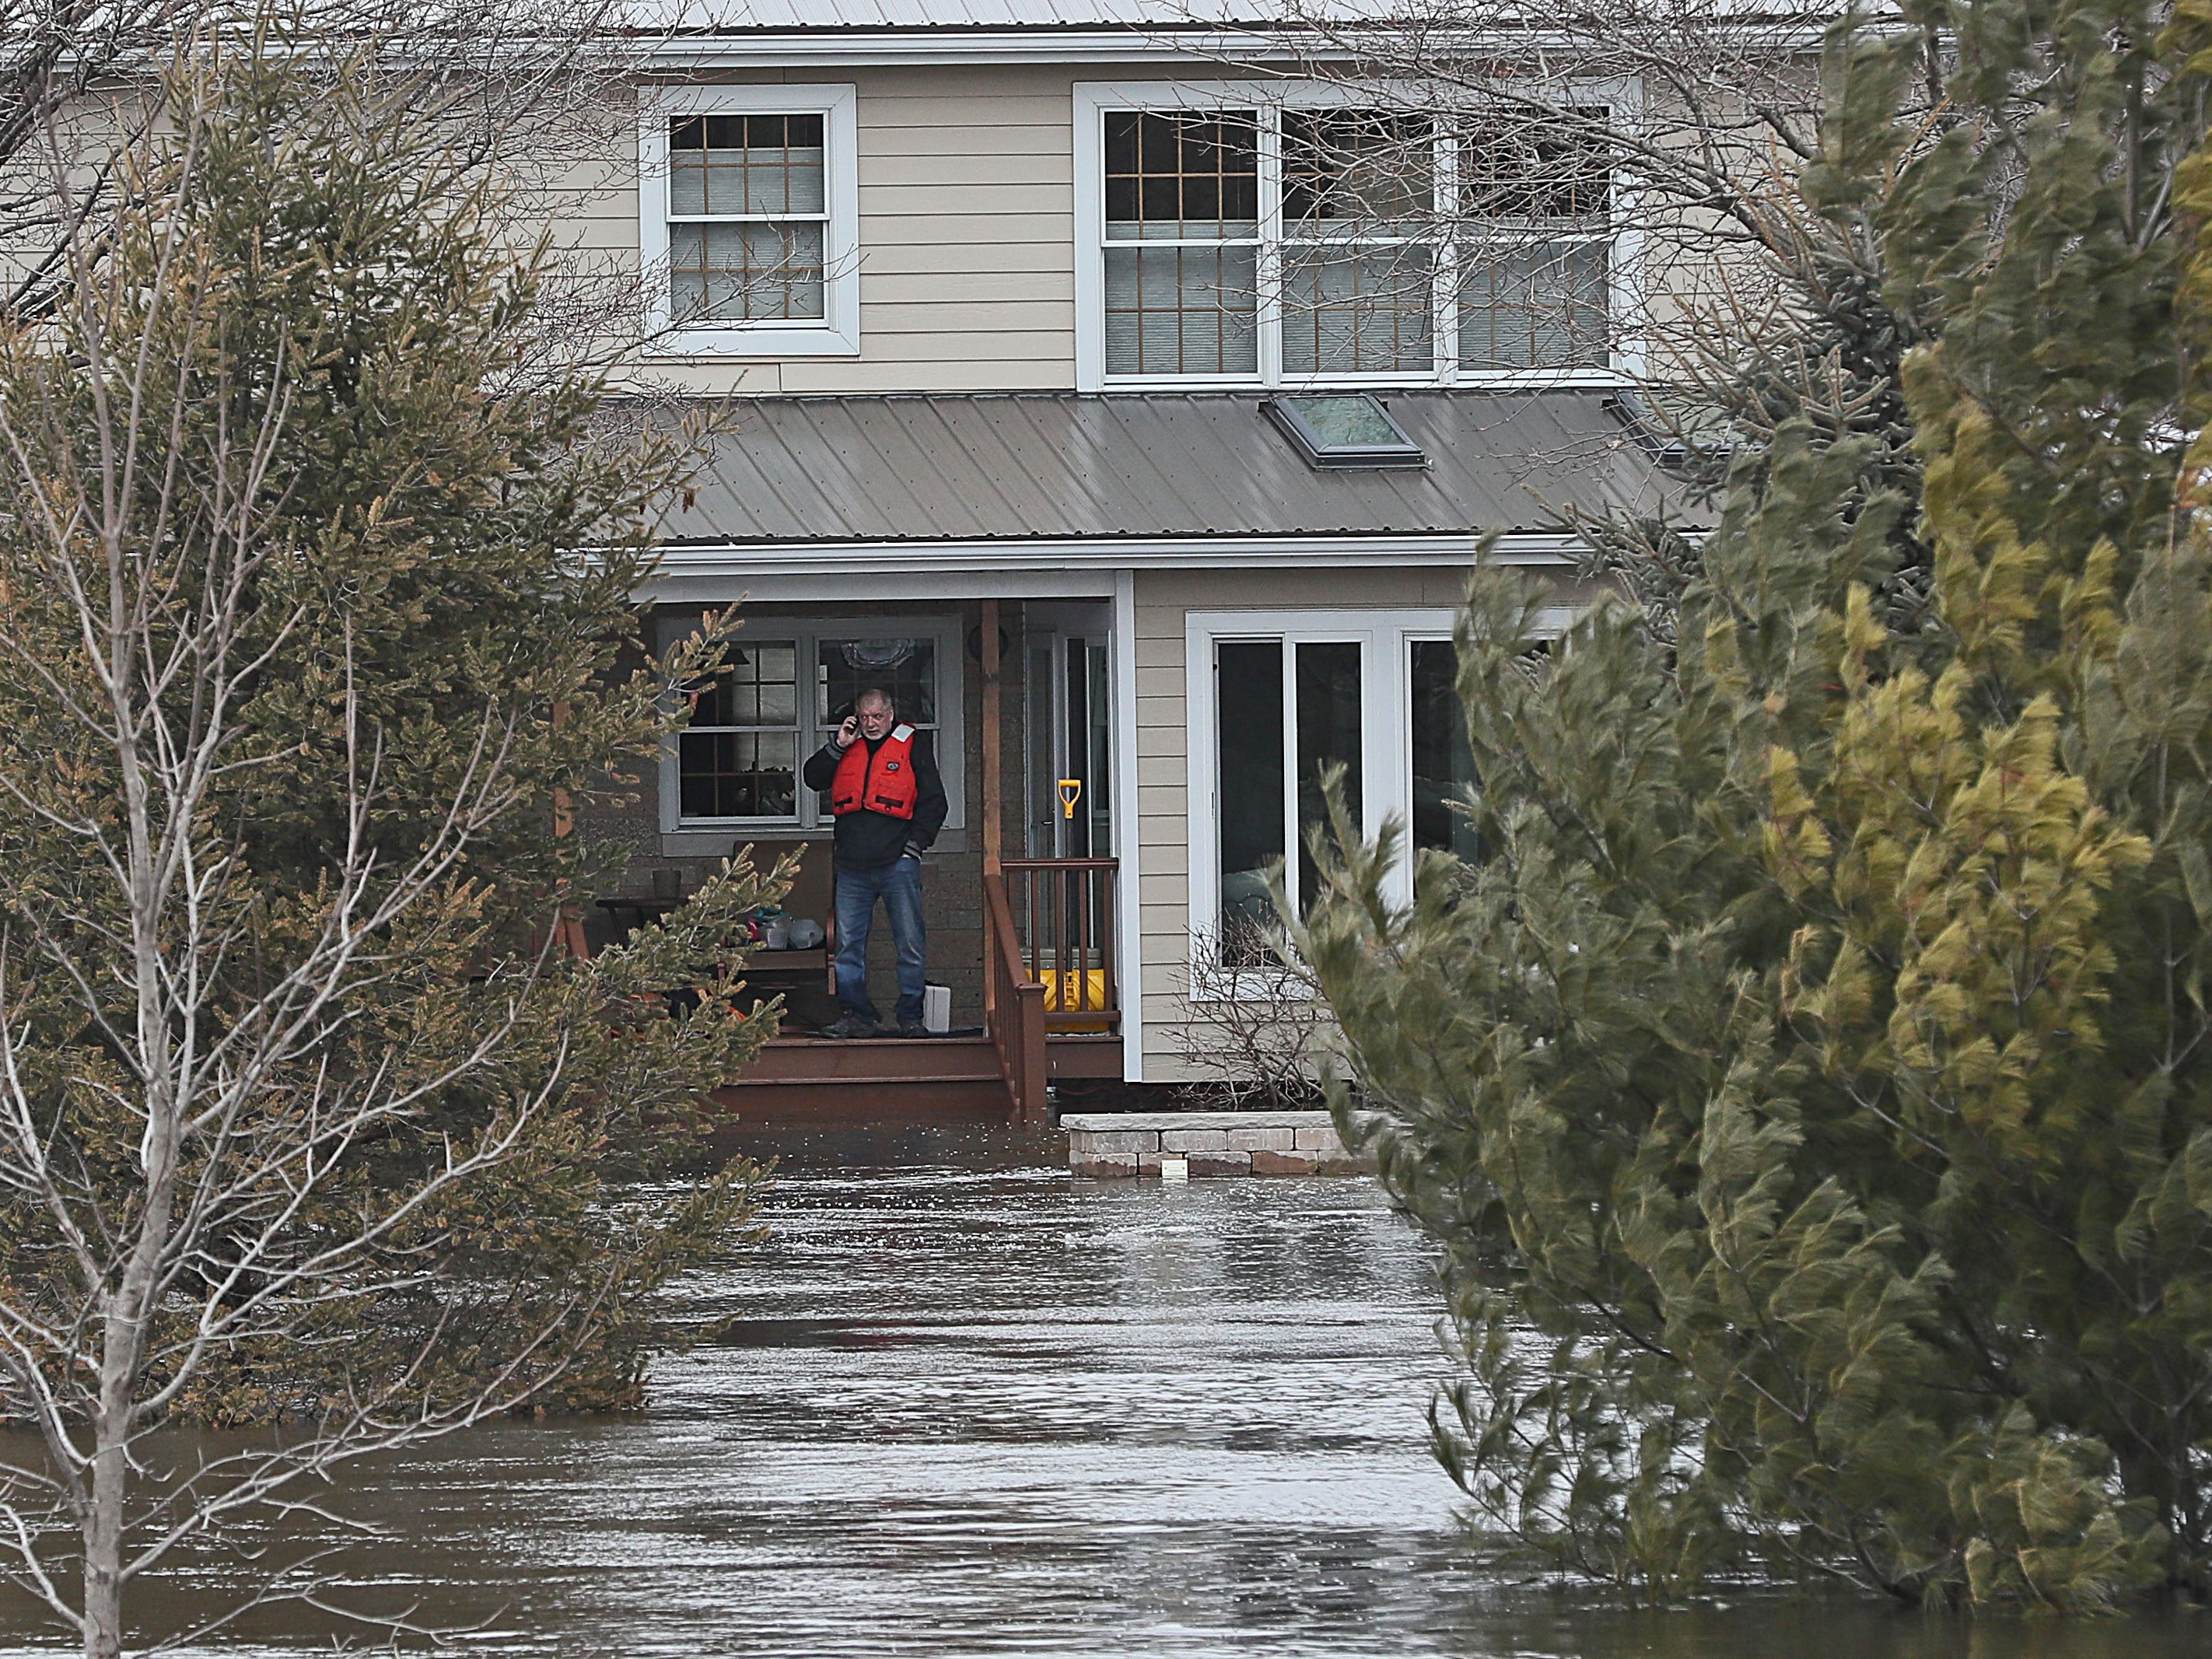 One of the home's residents wait for the firefighters boat to take him to high ground. March 15, 2019 Grafton firefighters rescued two people from the Riverview Kennel on the Milwaukee River at  1584 Pioneer Rd in Cedarburg.  Ice going out on the river was blocked by bridge diverting flow over the Cty Highway C and the surround low areas.